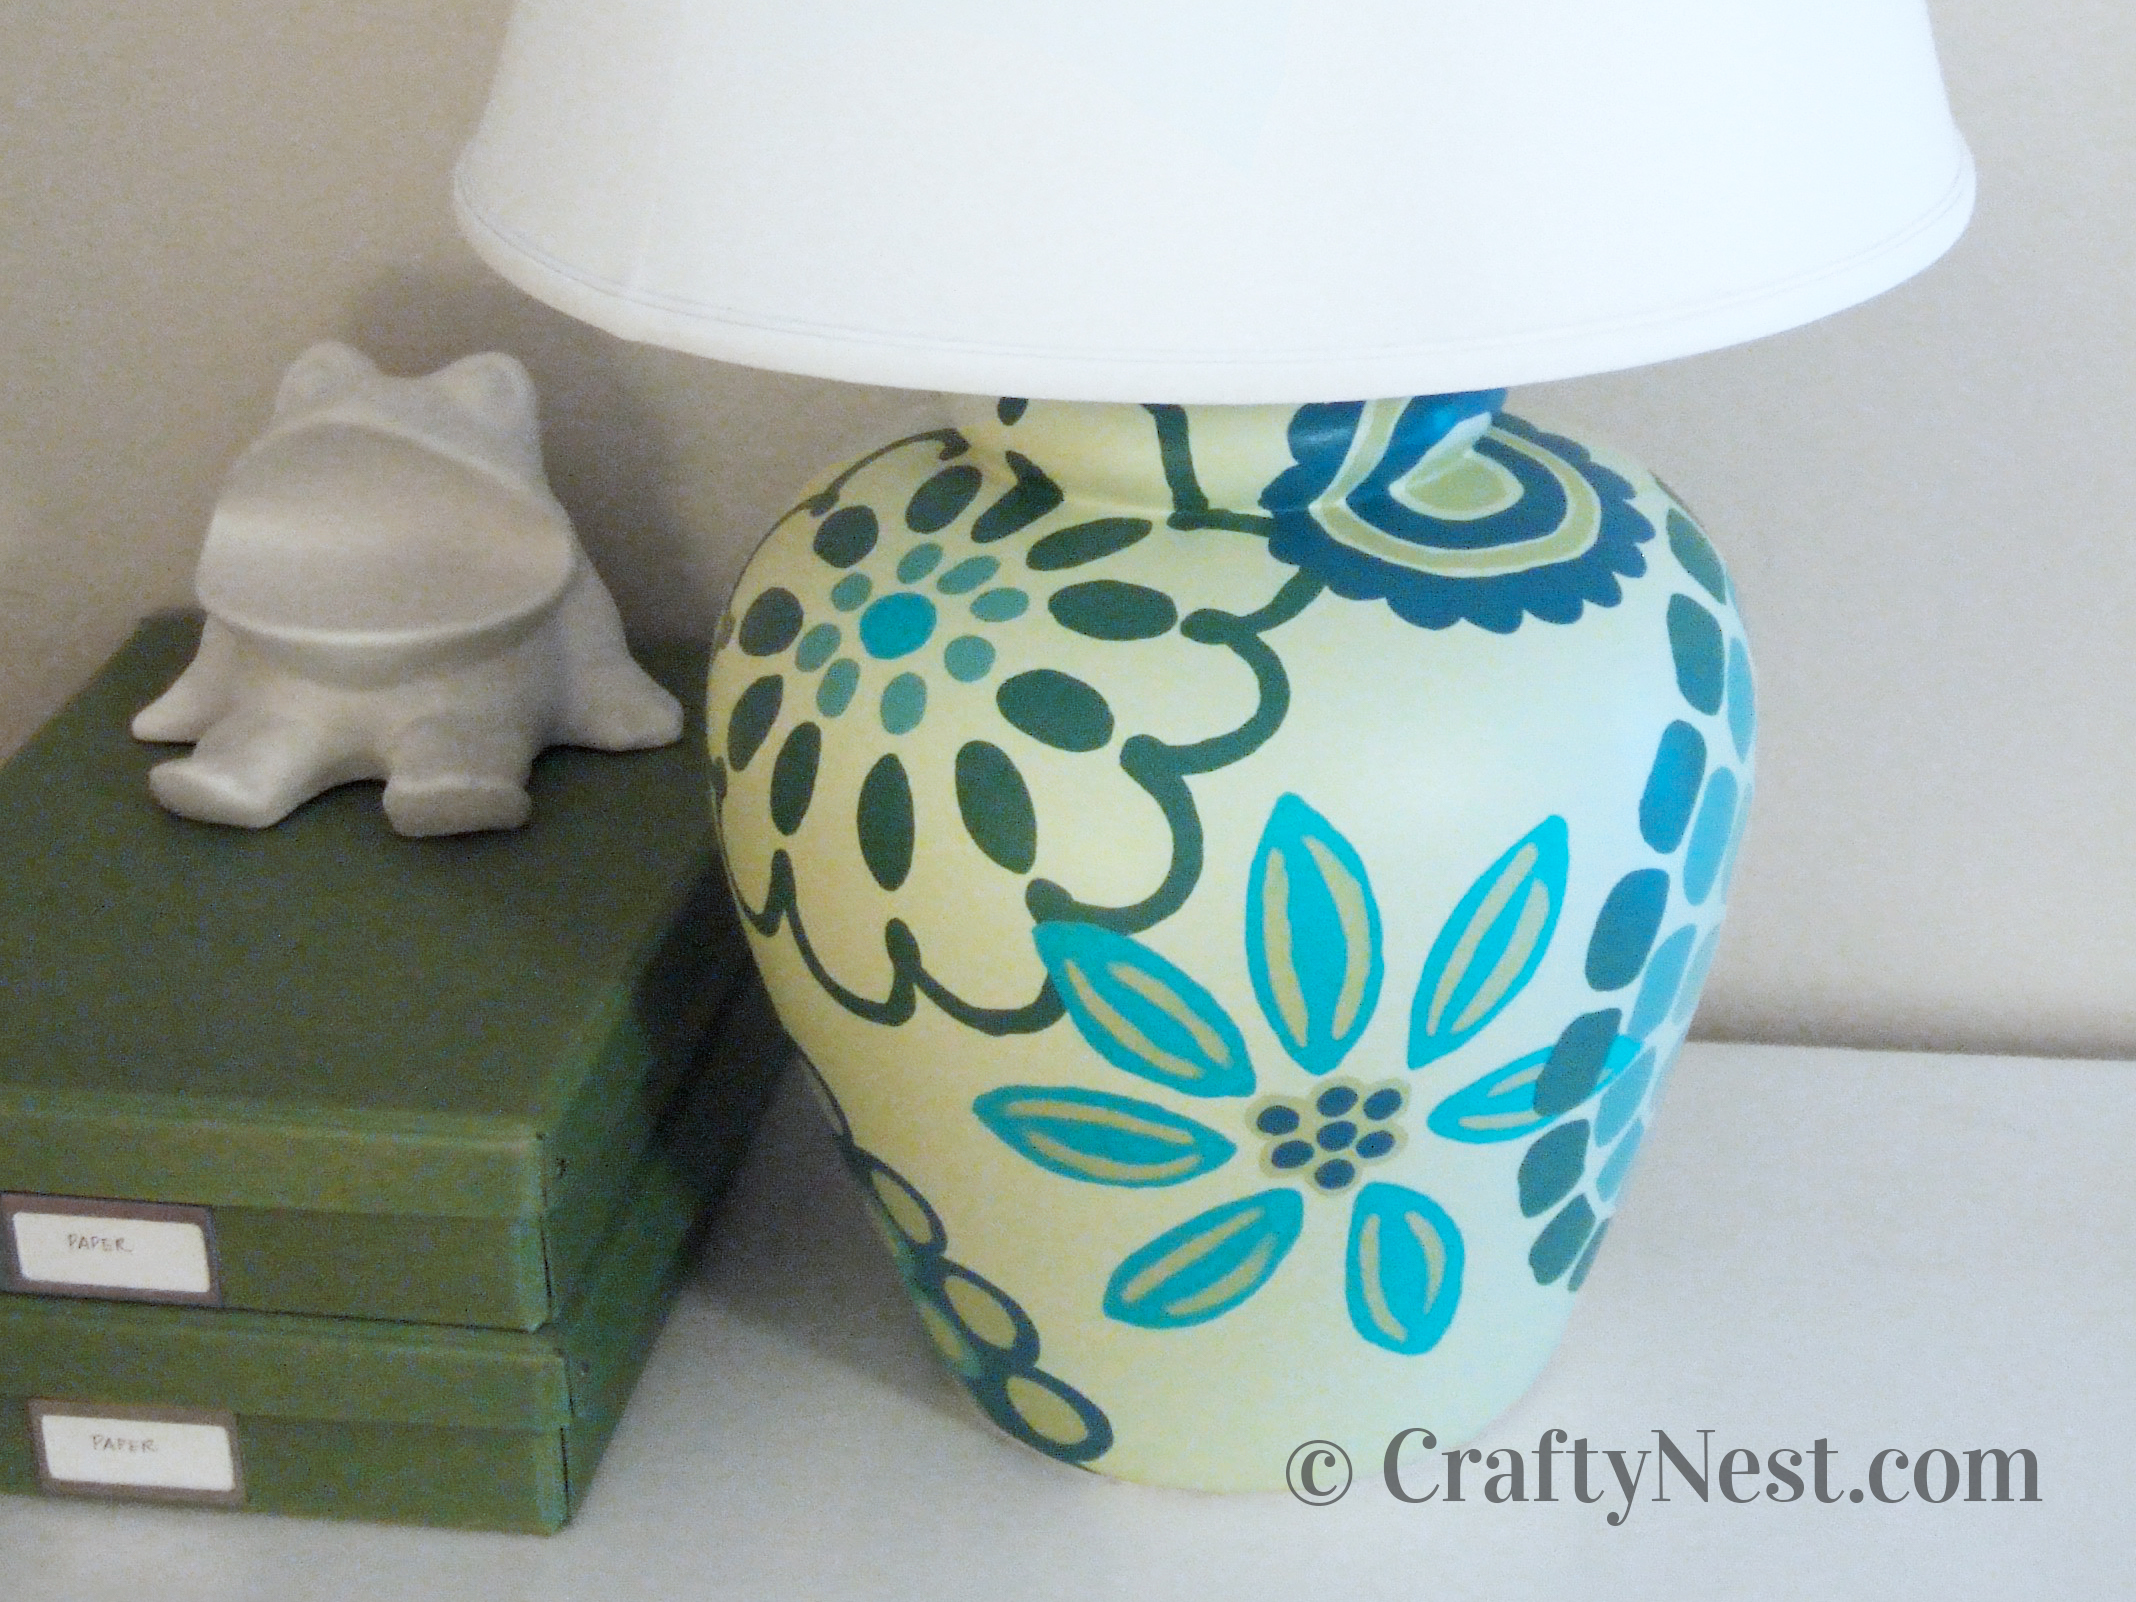 Handpainted table lamp and final, photo